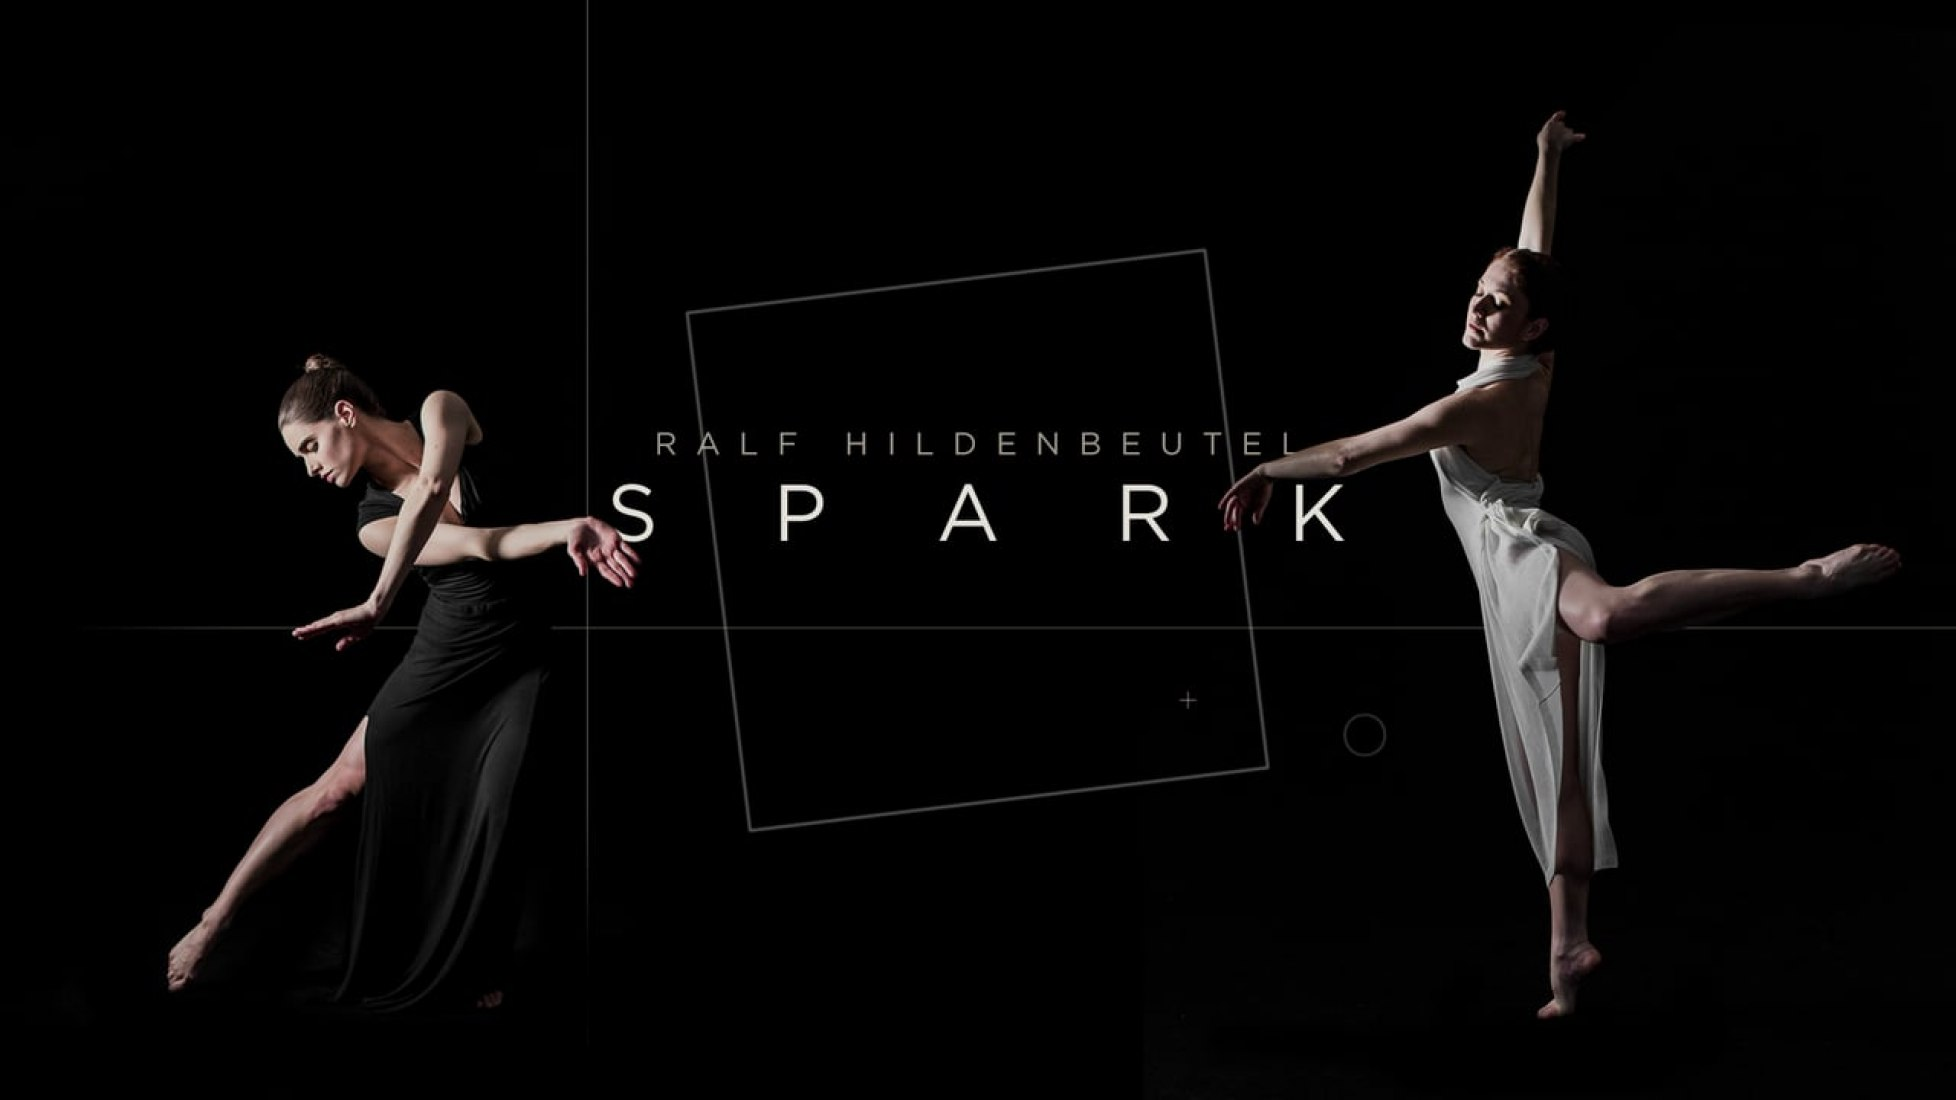 Video screenshot. RALF HILDENBEUTEL - SPARK by Boris Seewald